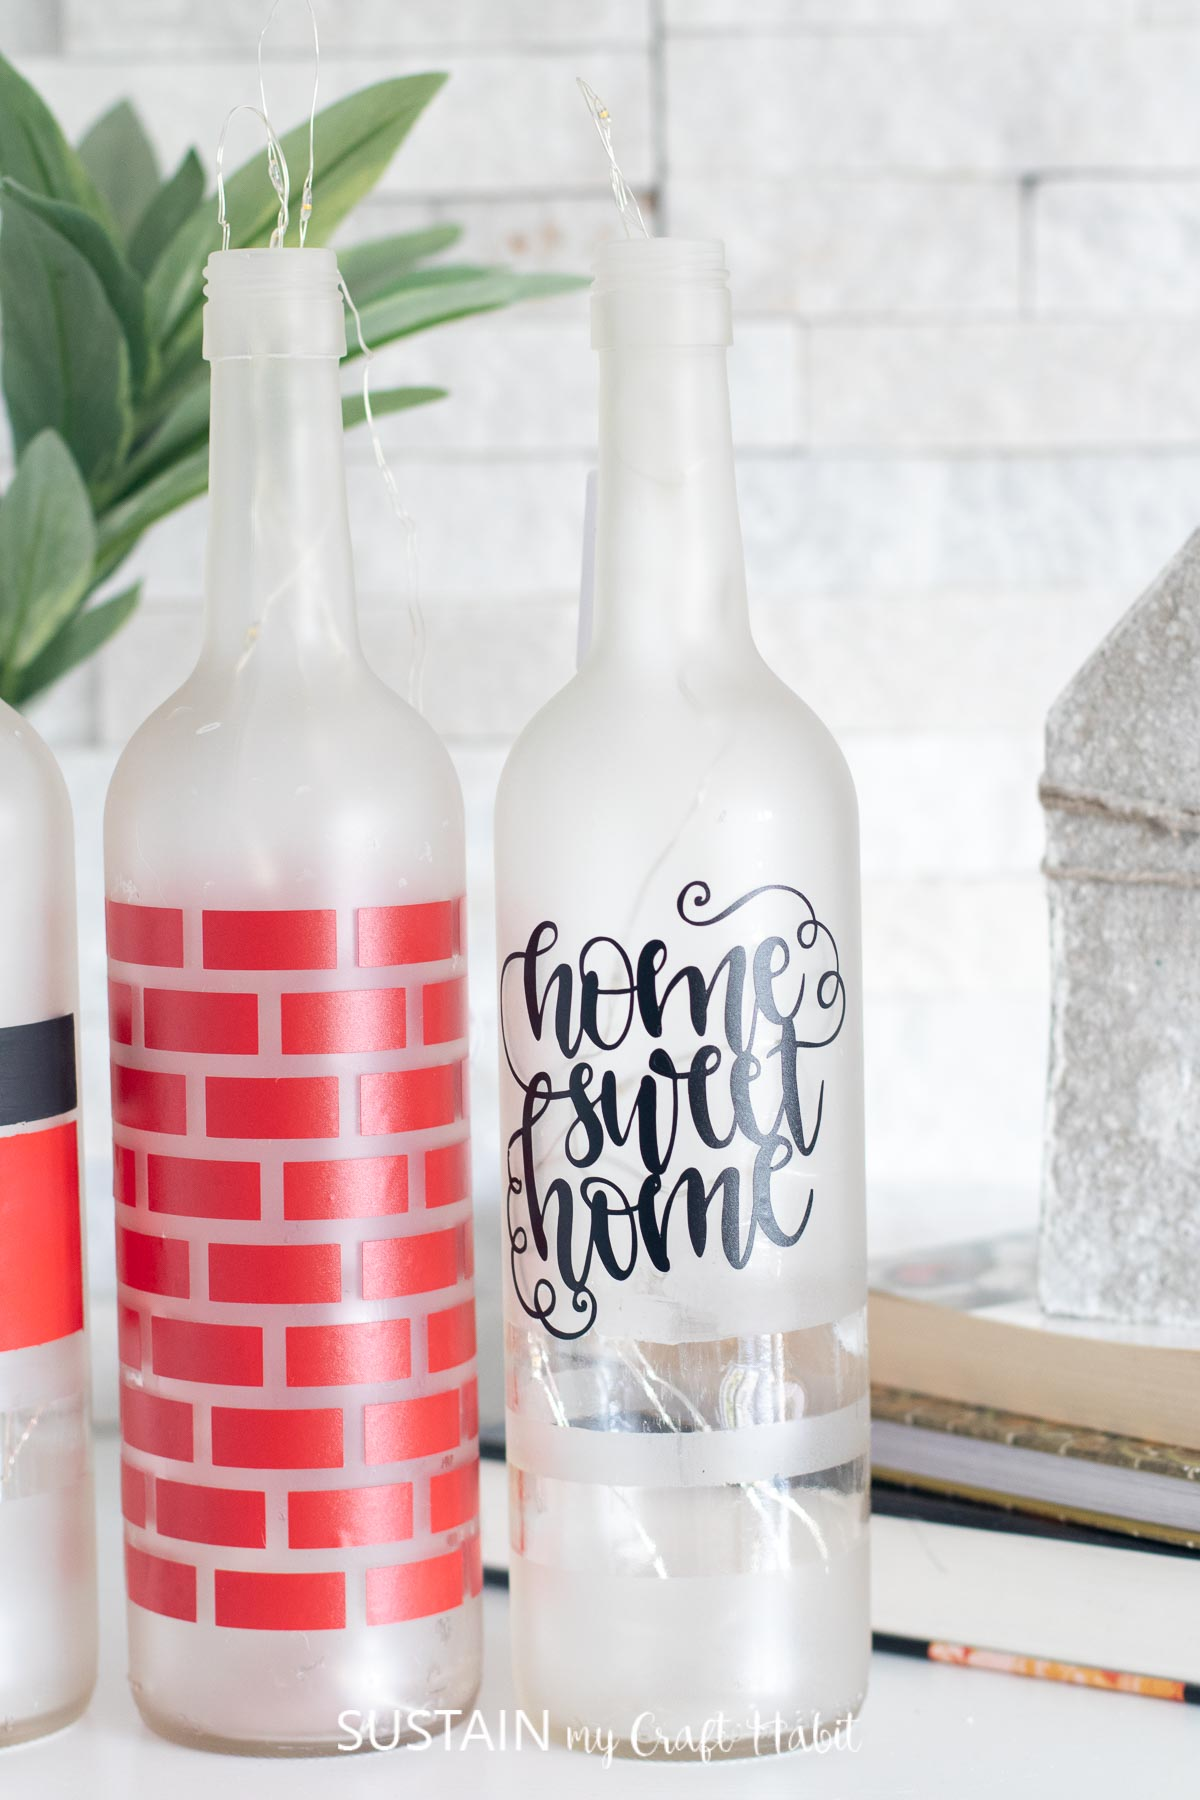 Close up image of bottle with the home sweet home decal in a fancy, scripted font.